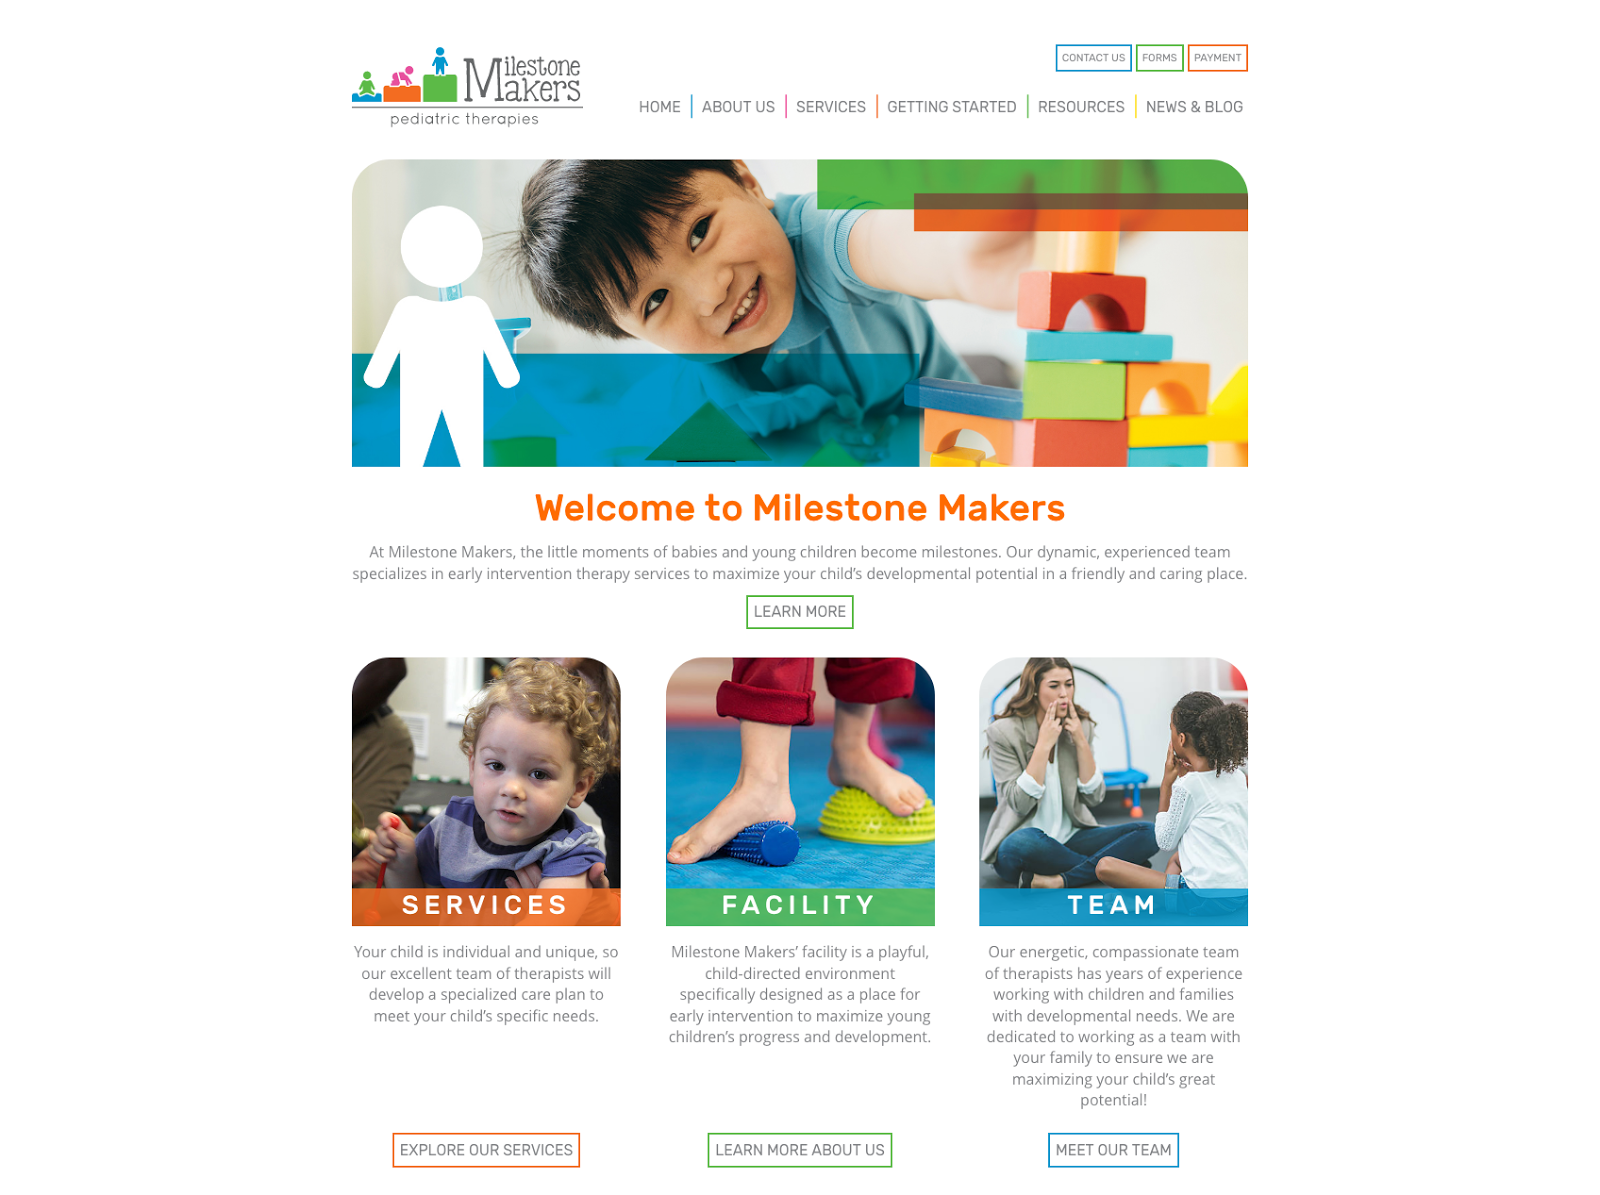 Milestone Makers Pediatric Therapies